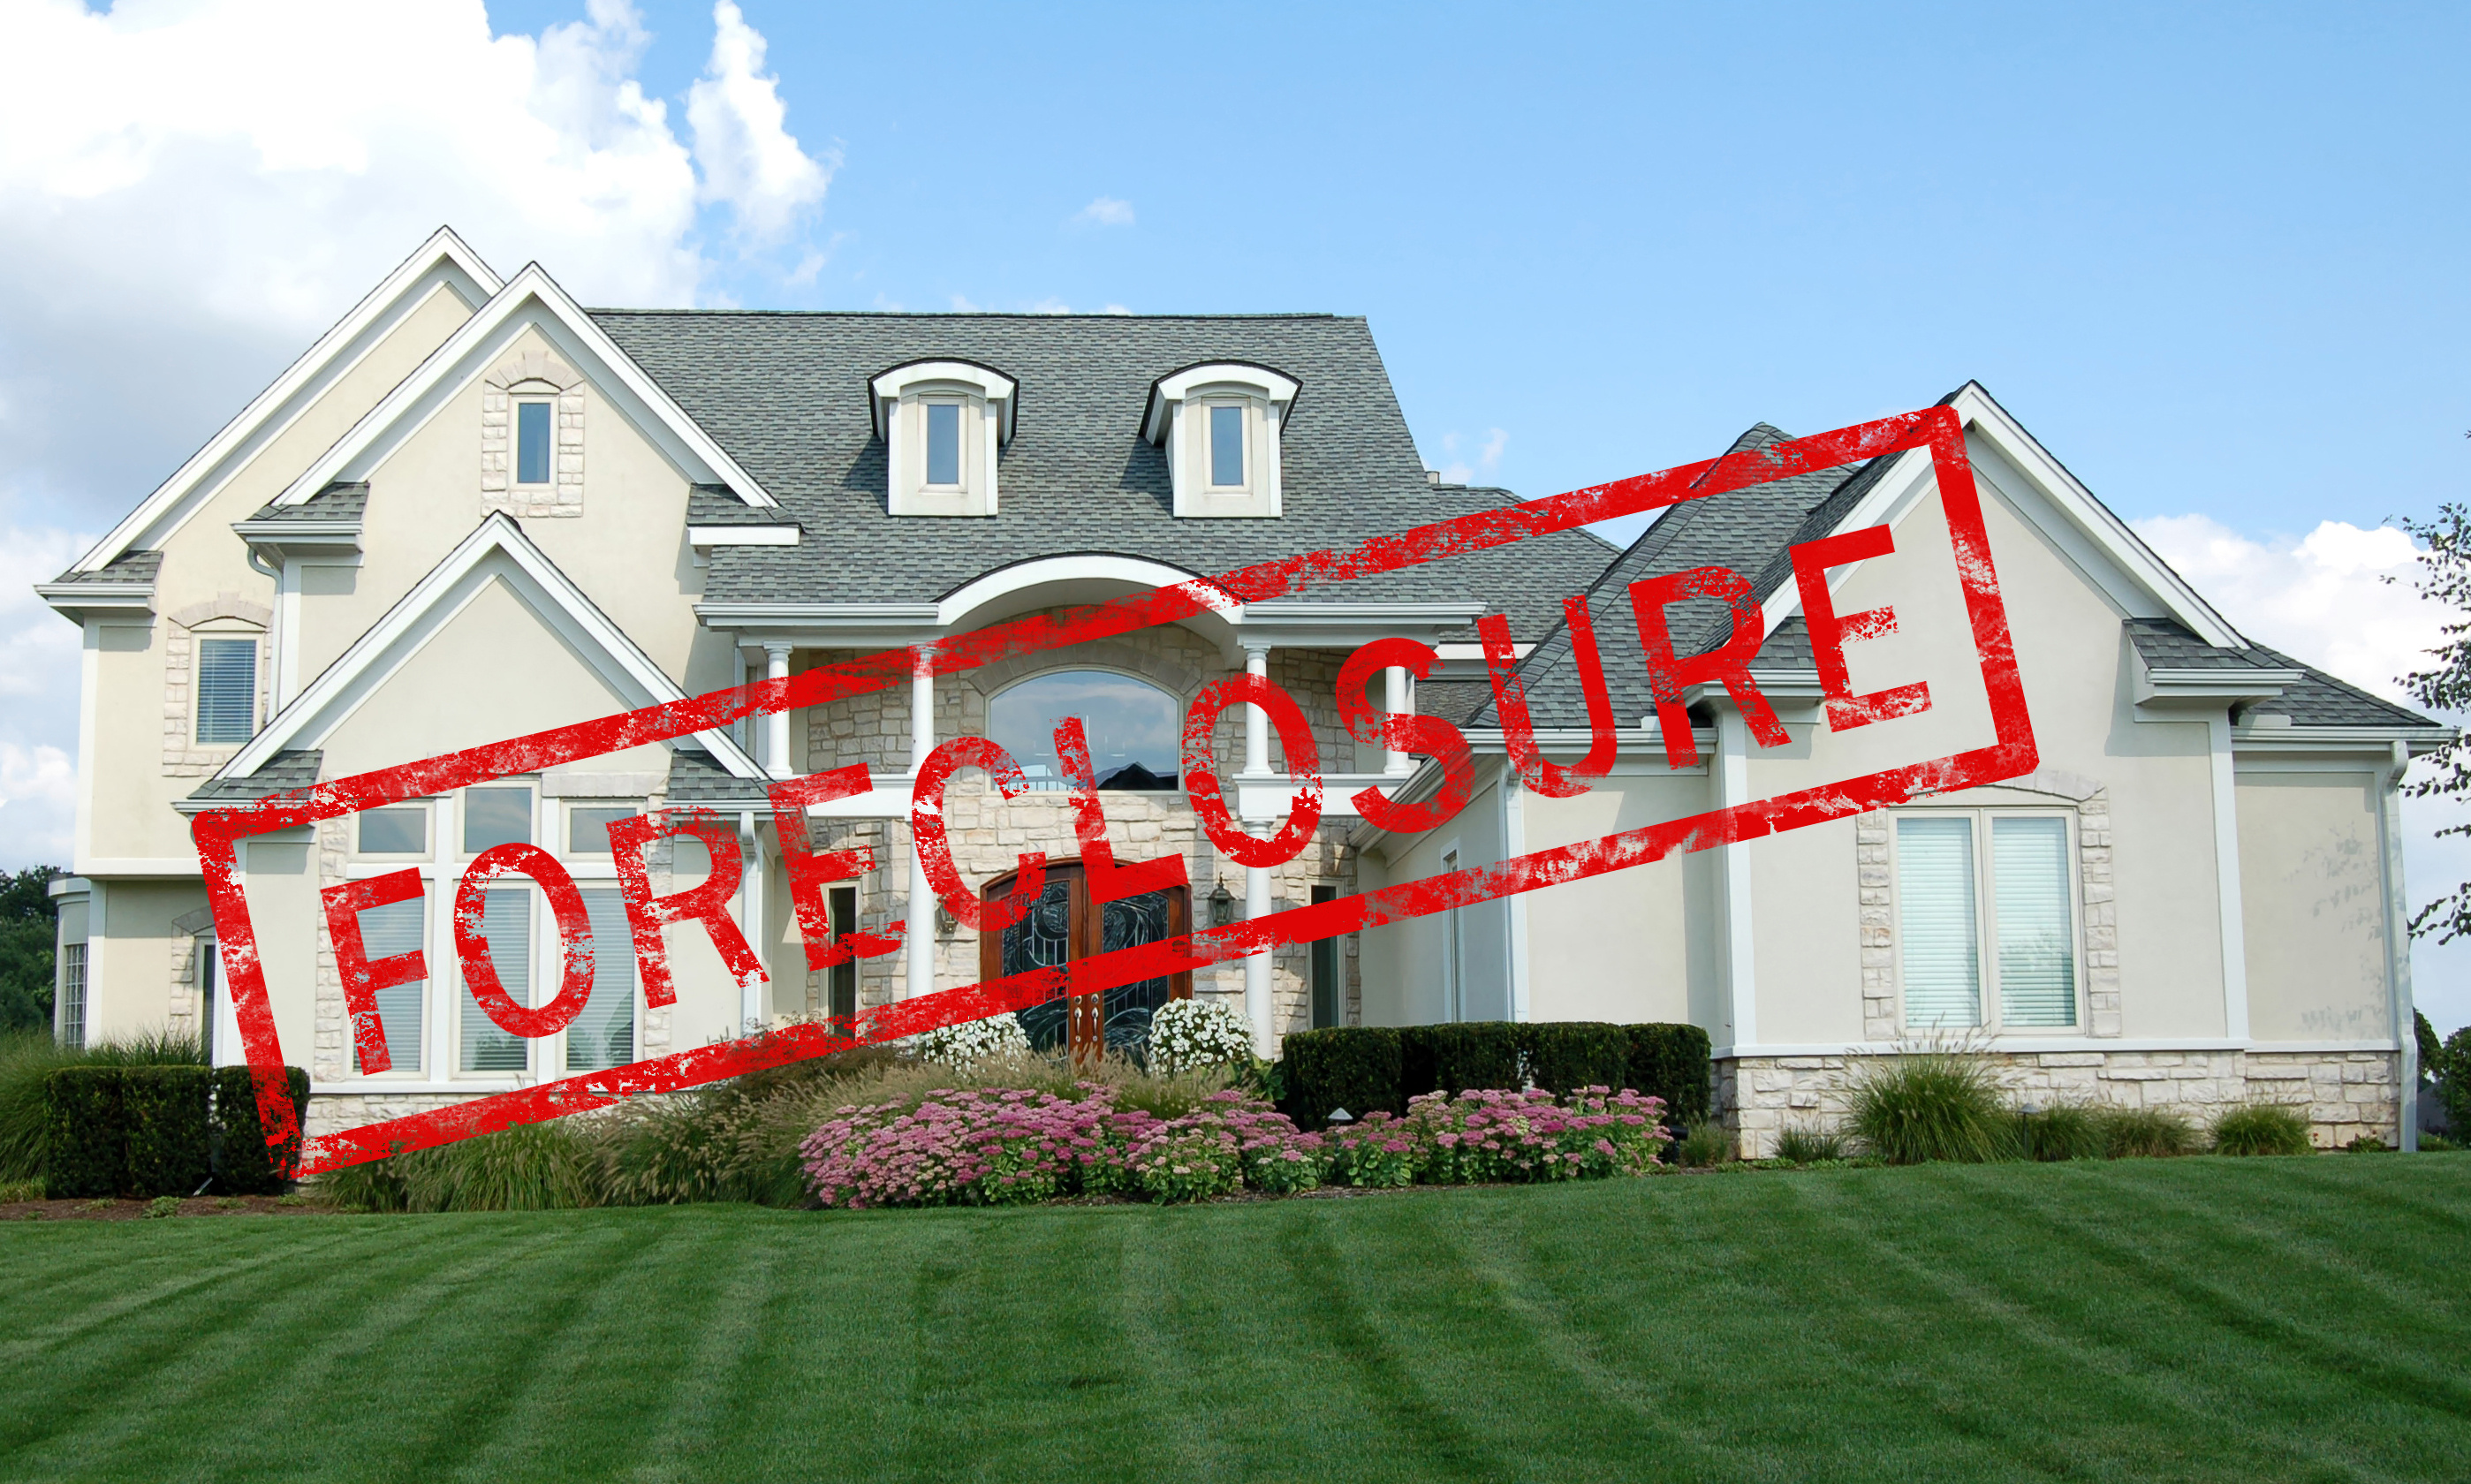 Call Preferred Appraisers, Inc. when you need appraisals for Gloucester foreclosures